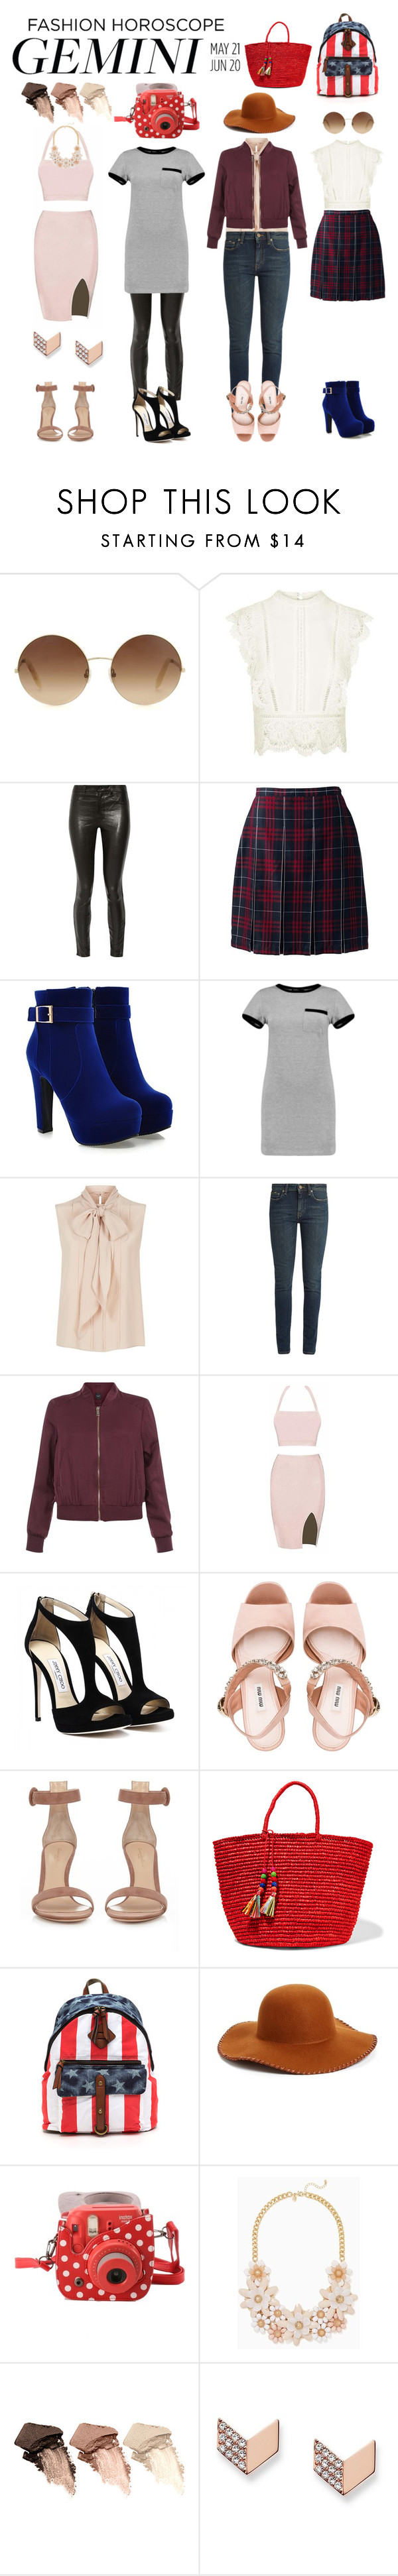 """gemini"" by jammis7 ❤ liked on Polyvore featuring Victoria Beckham, Topshop, J Brand, Lands' End, Boohoo, MaxMara, Yves Saint Laurent, New Look, Miu Miu and Gianvito Rossi"